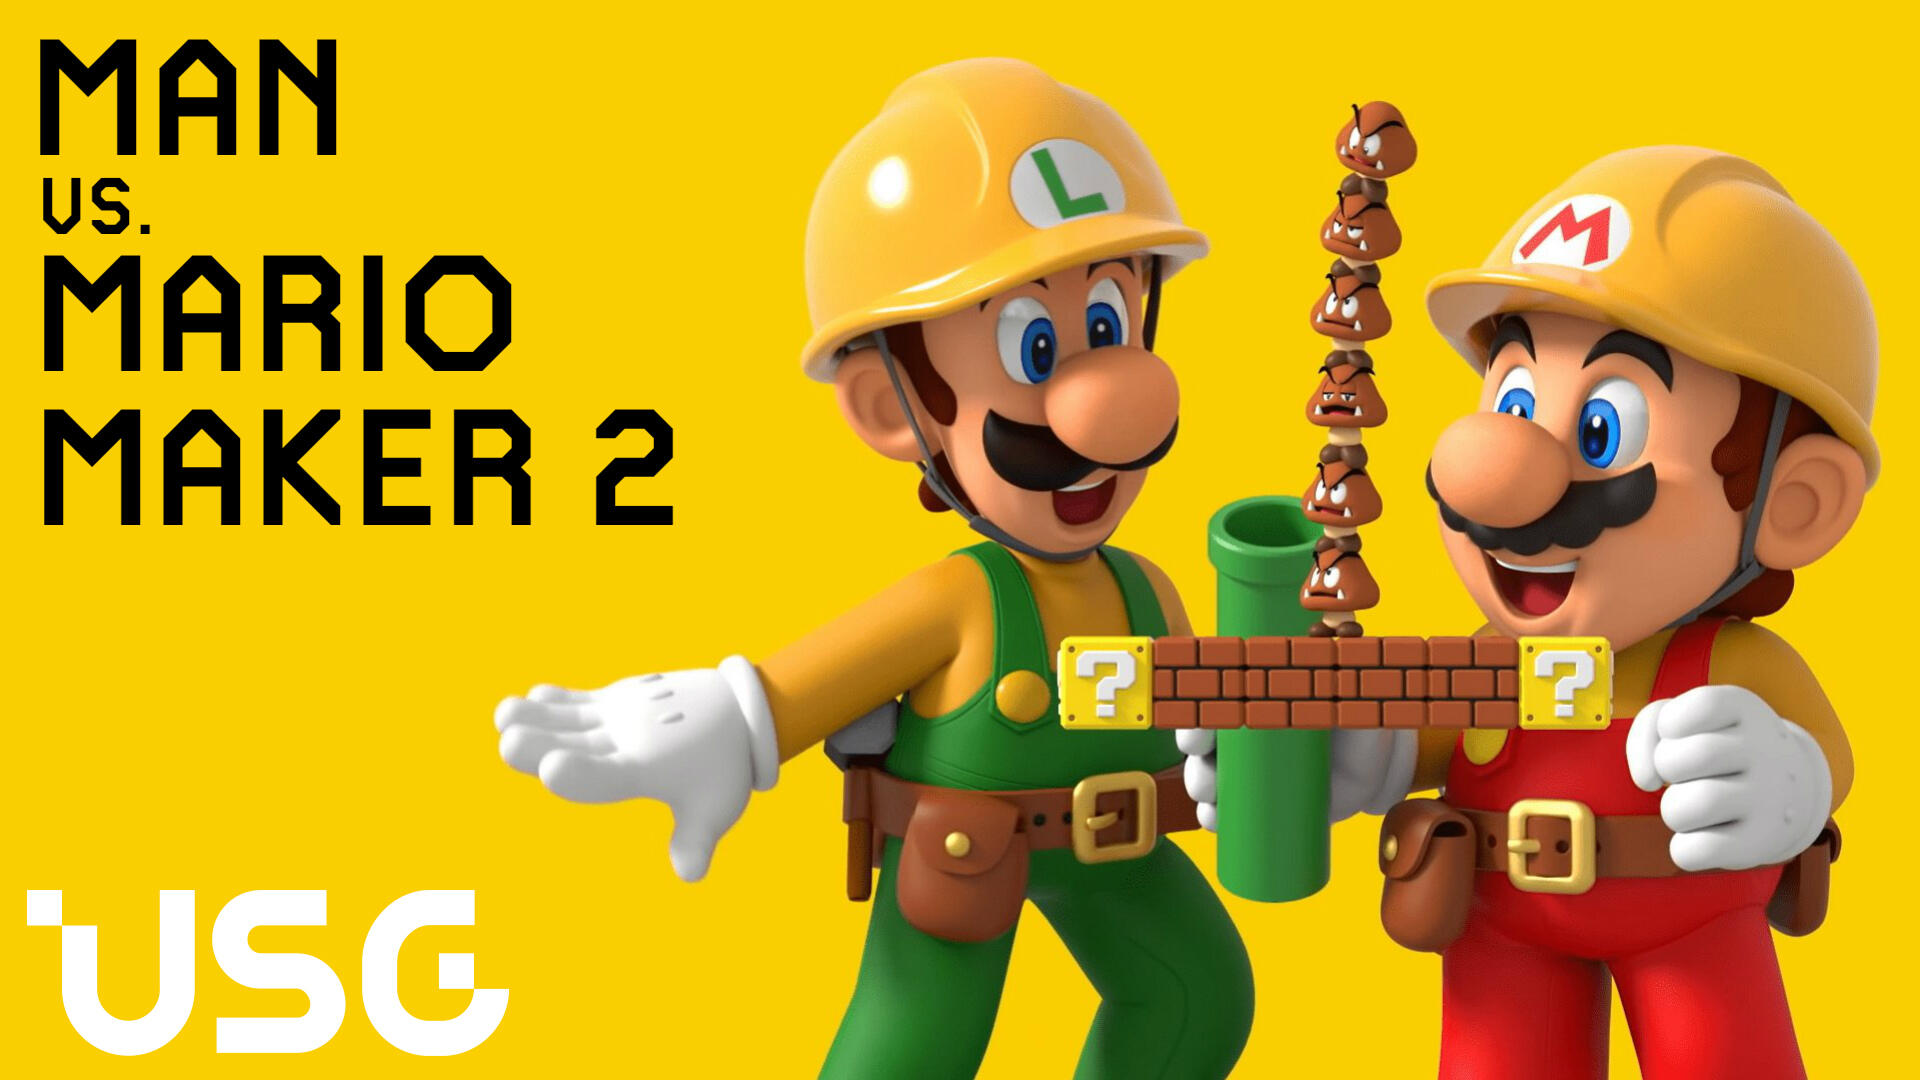 Man vs. Mario Maker 2: The Superball, Arby's, and World 1-1 is Burning